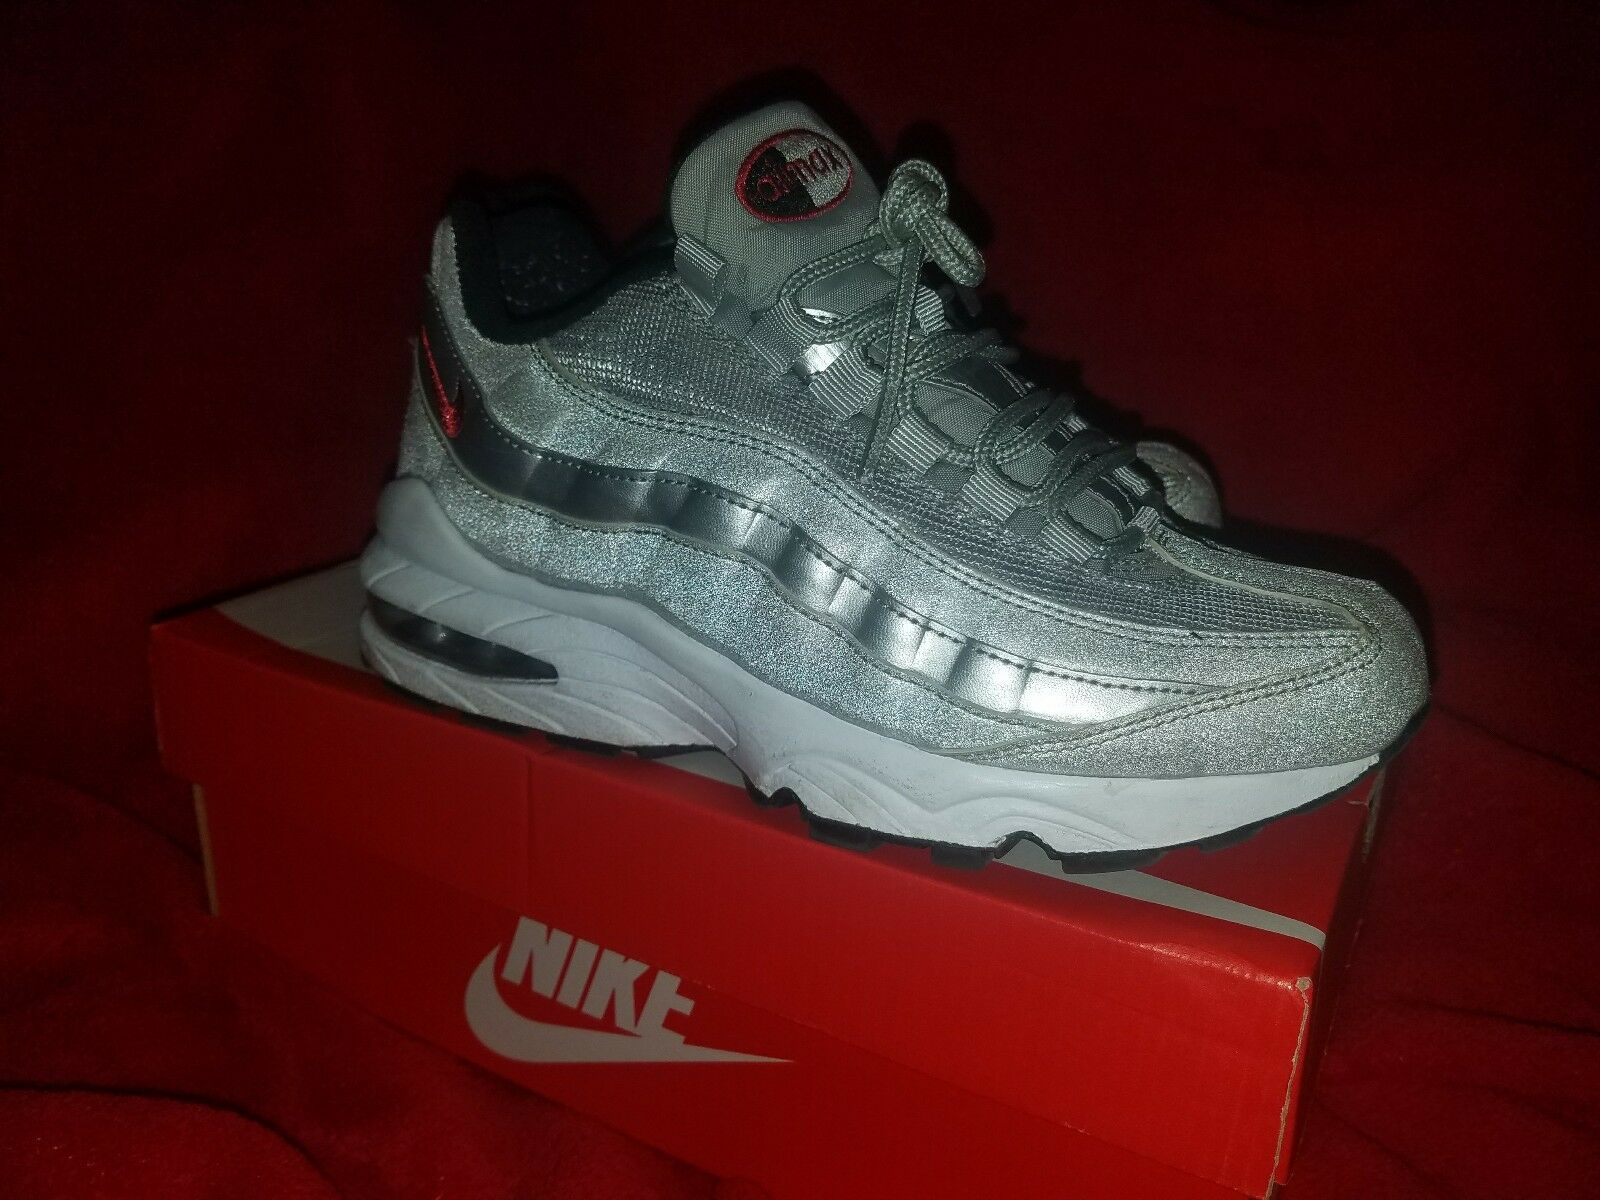 silver air max 95 wild taille 4 wild 95 souliers bd17e4